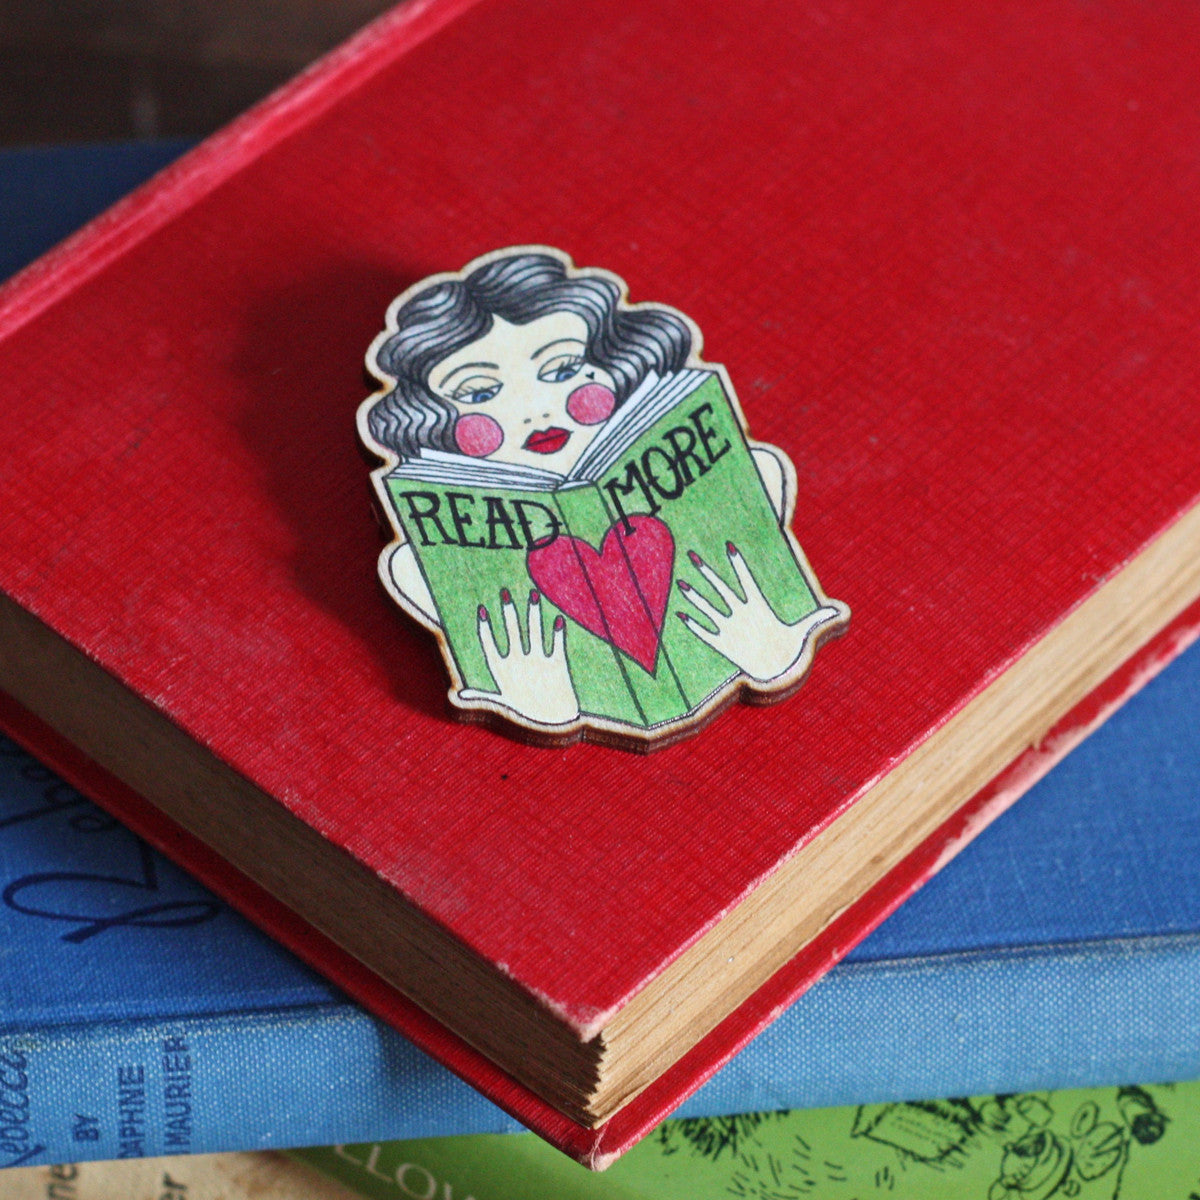 Brooch / Pin / Badge - Read More Books - Wooden-Jewellery-Book Lover Gifts